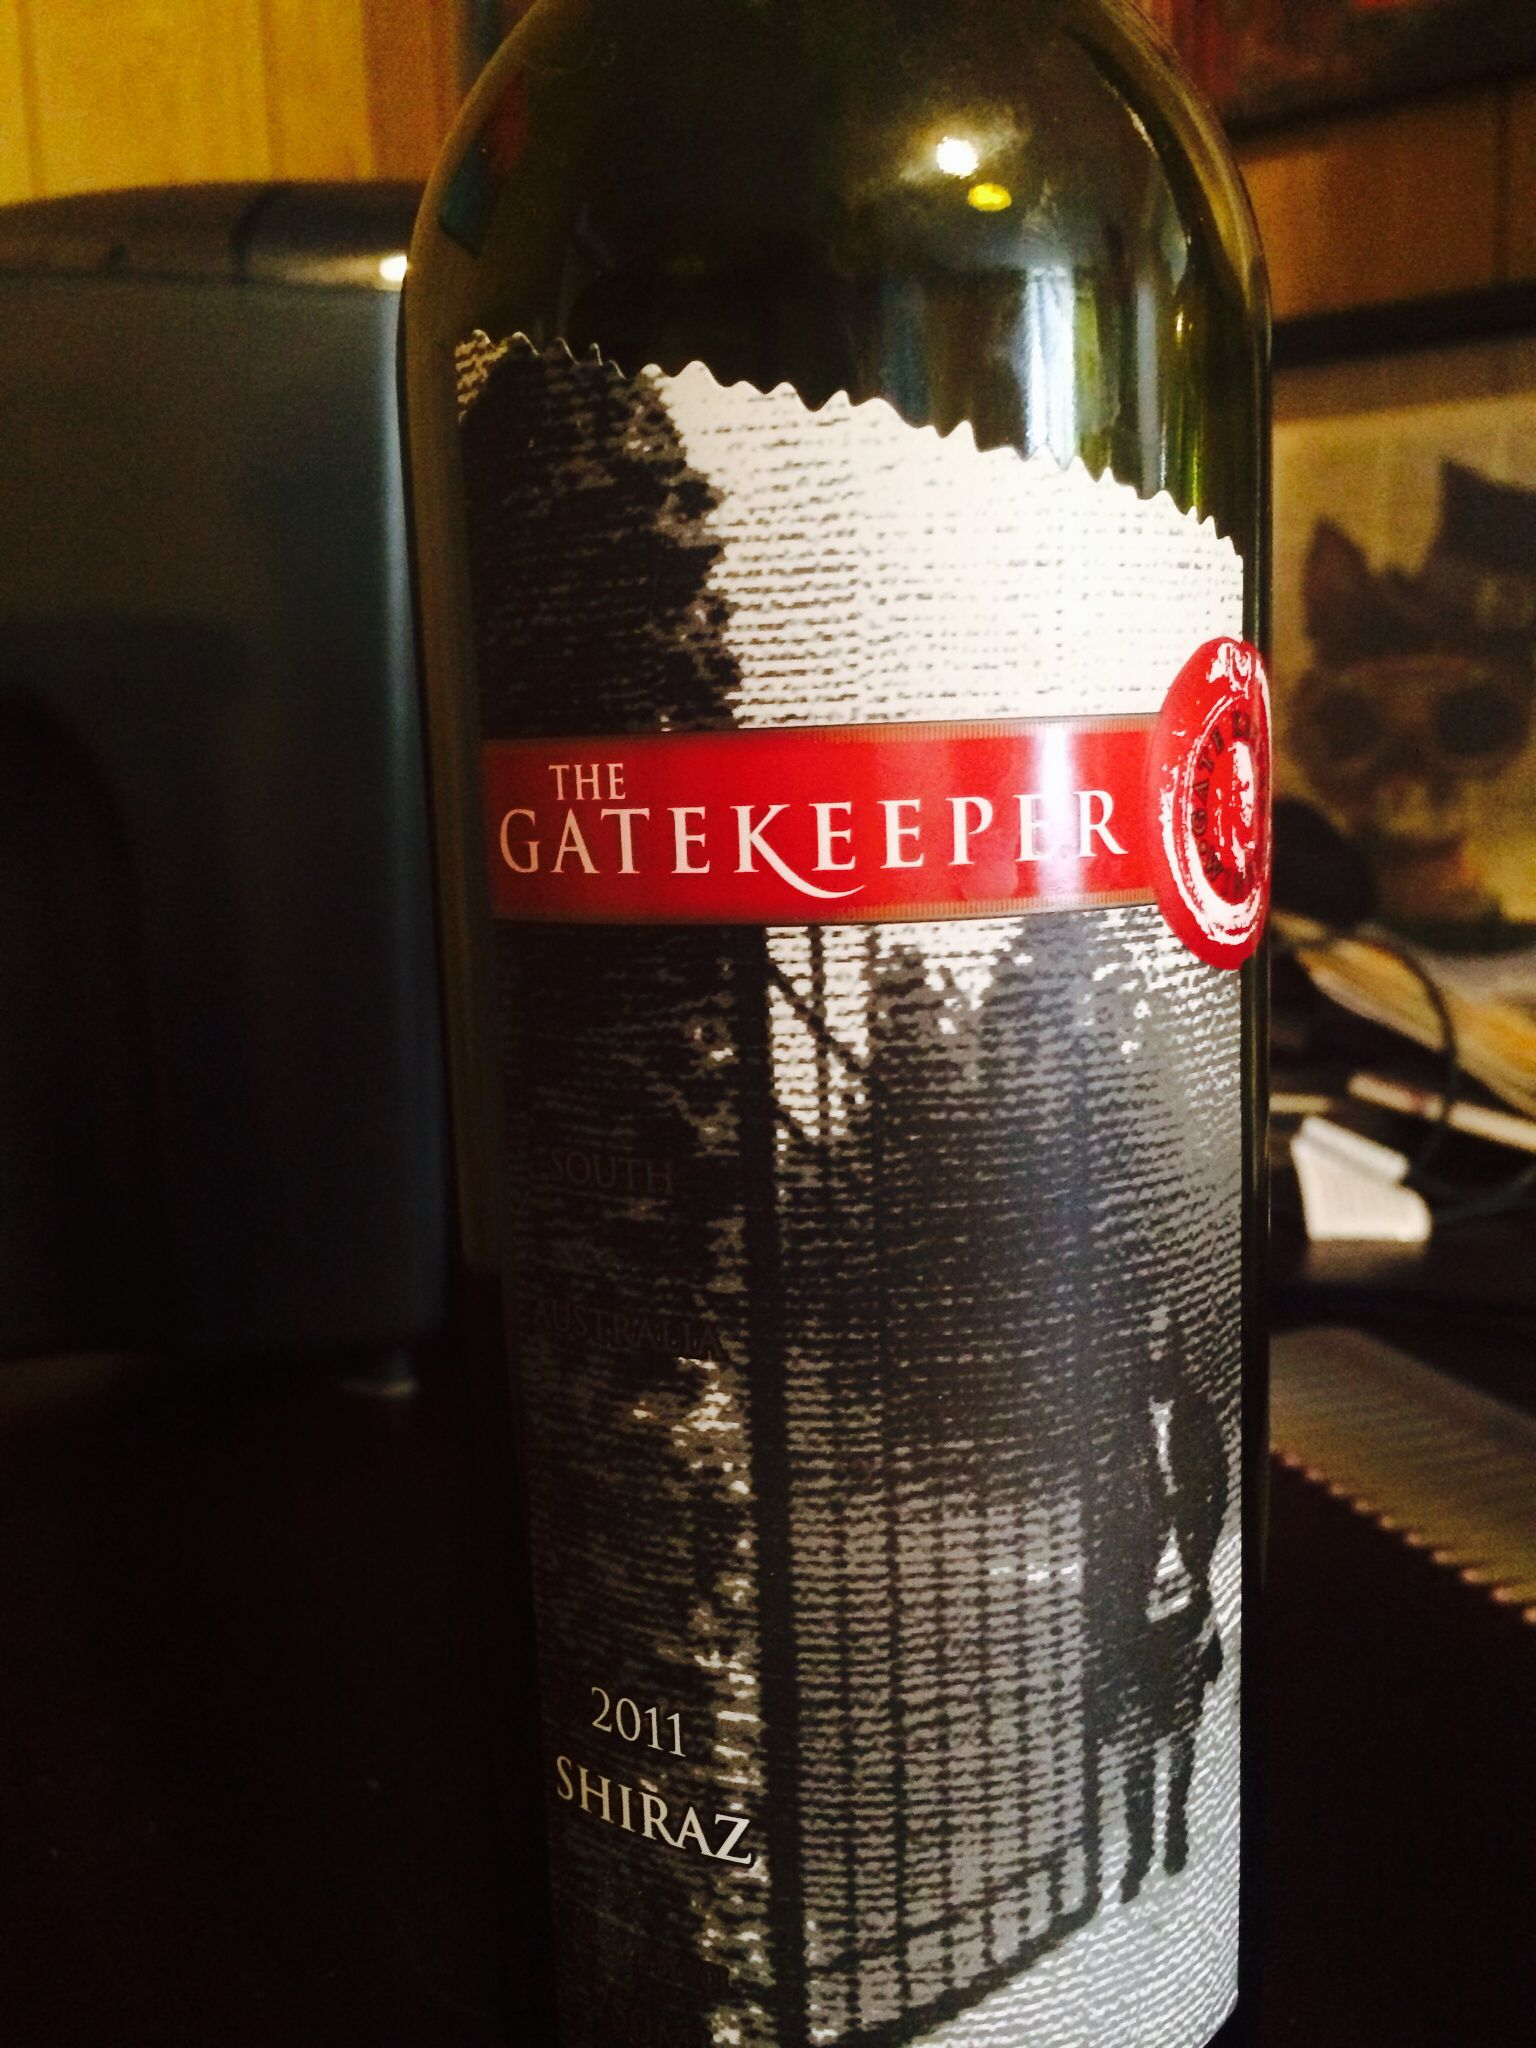 Gatekeeper Wine Label Wine Bottle Wine Label Wine